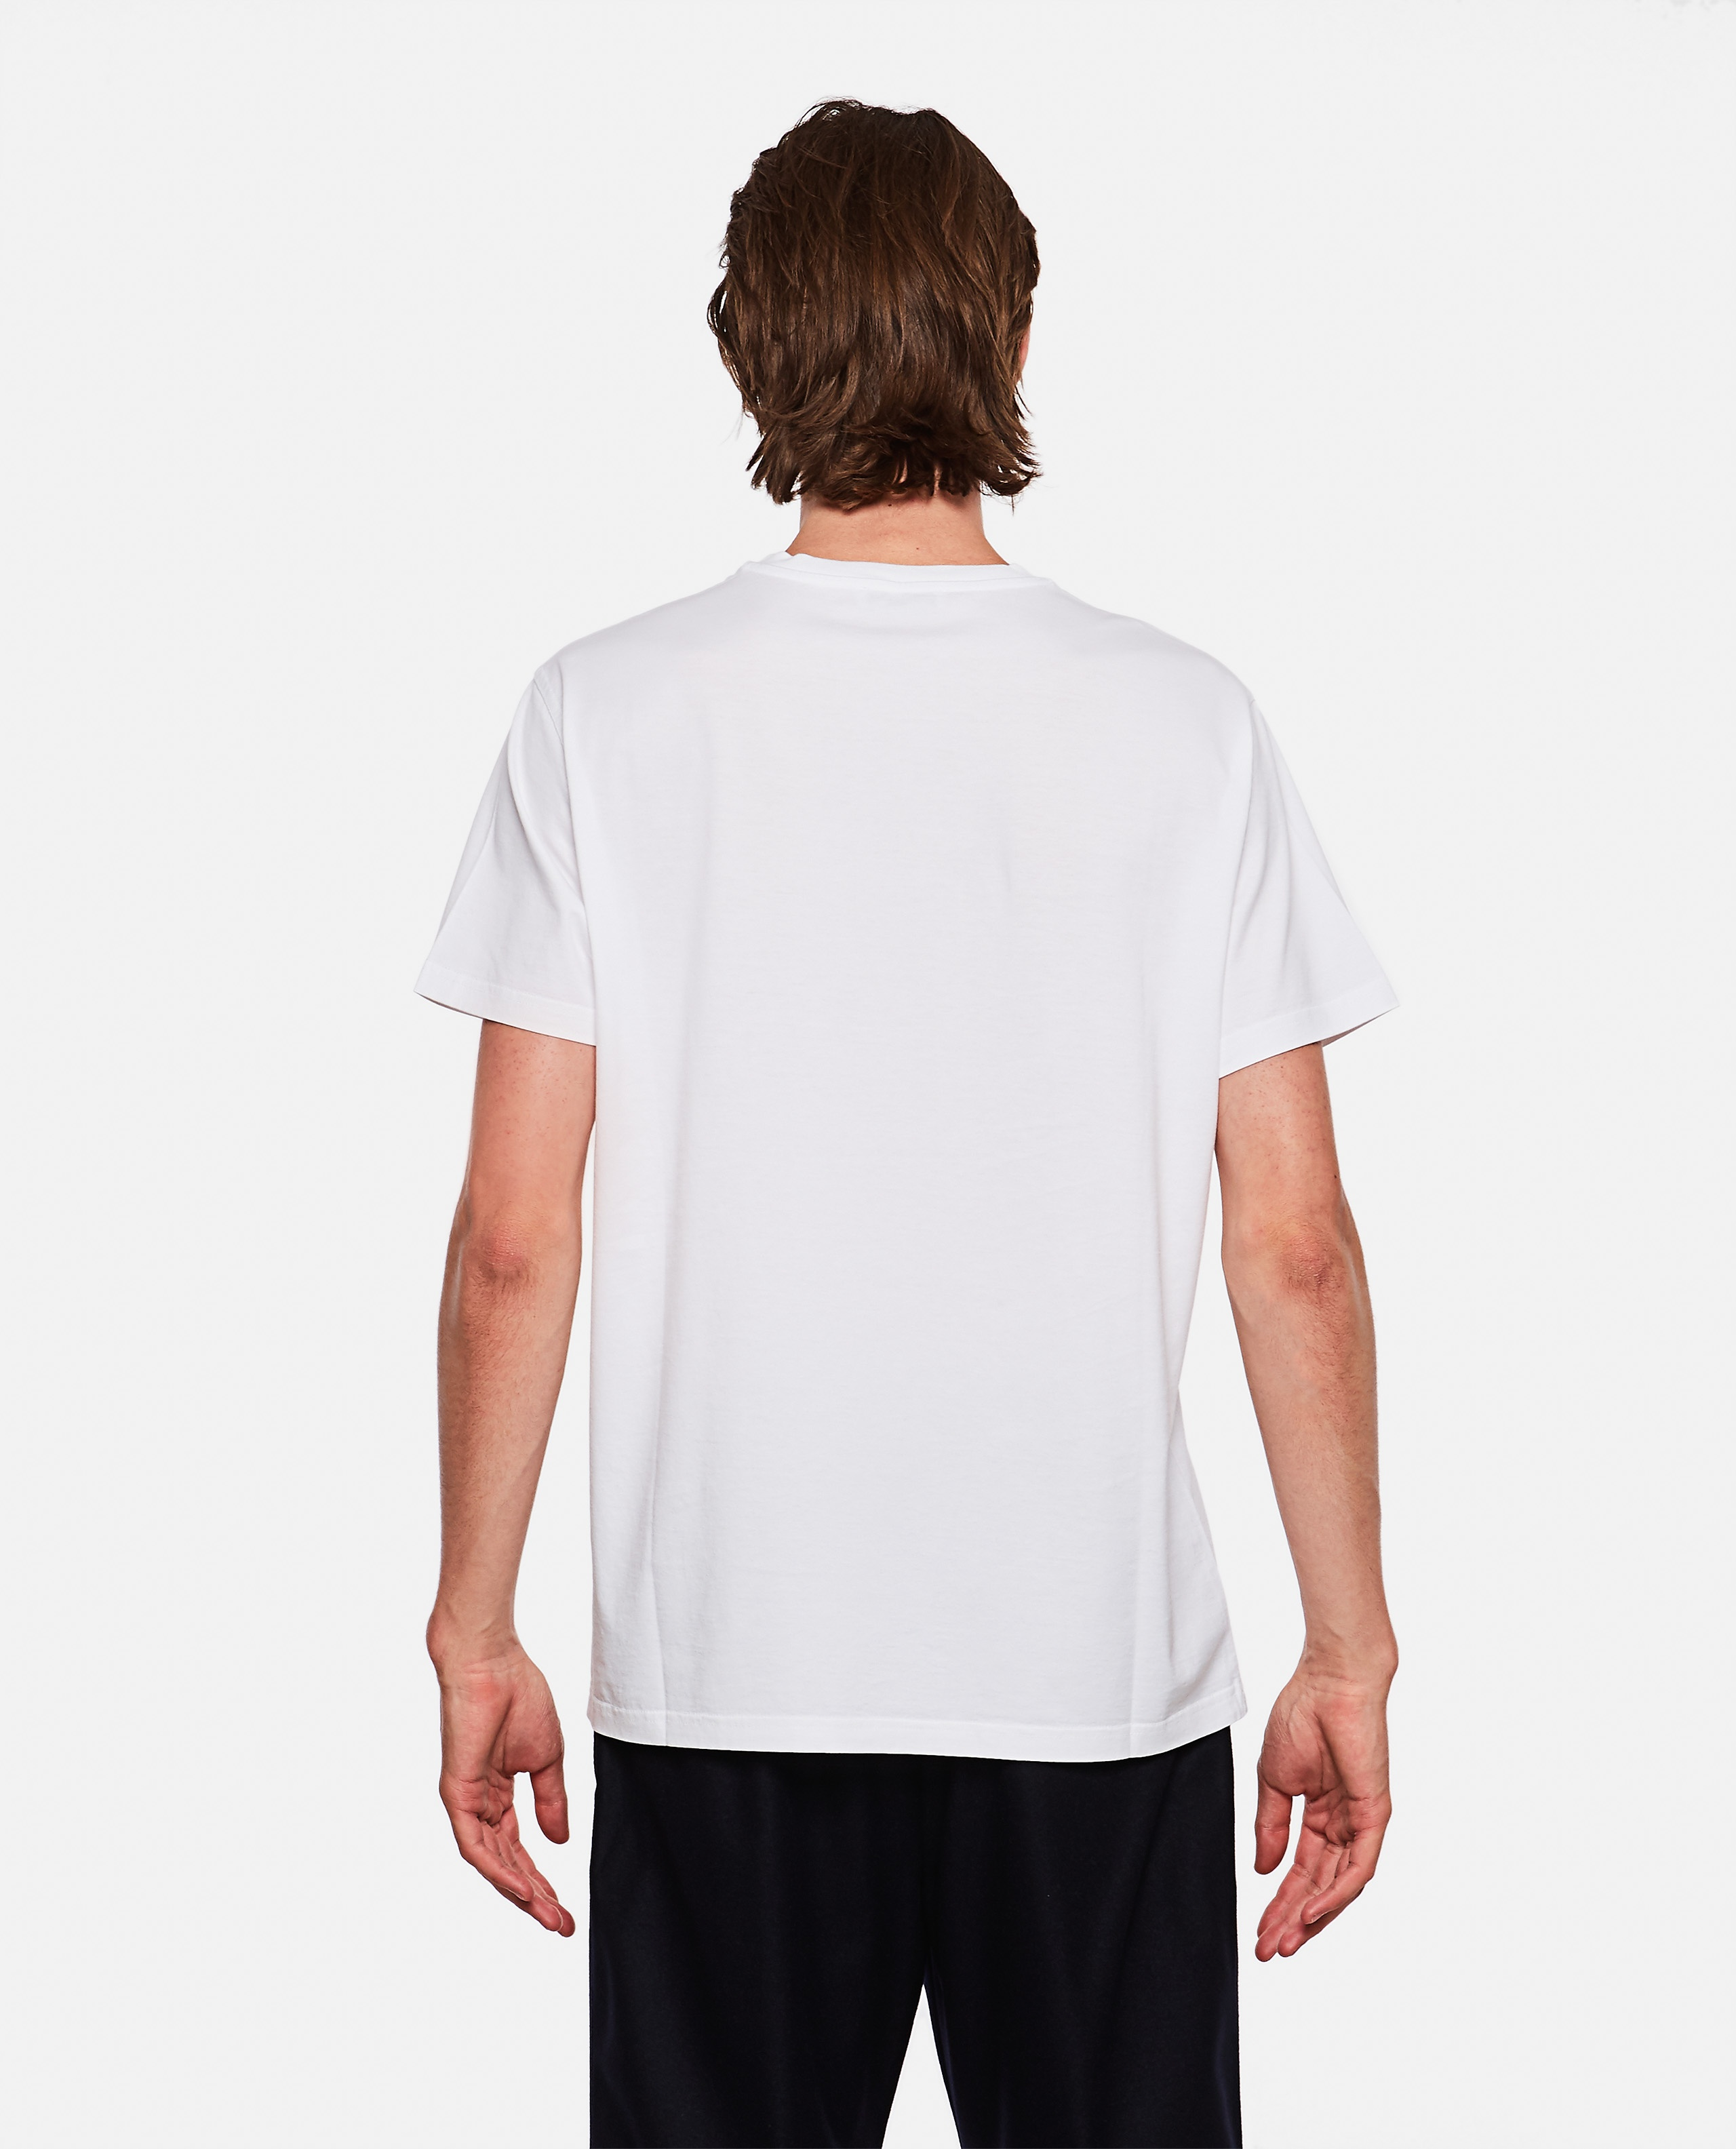 T-shirt with print Men Givenchy 000226670037384 3